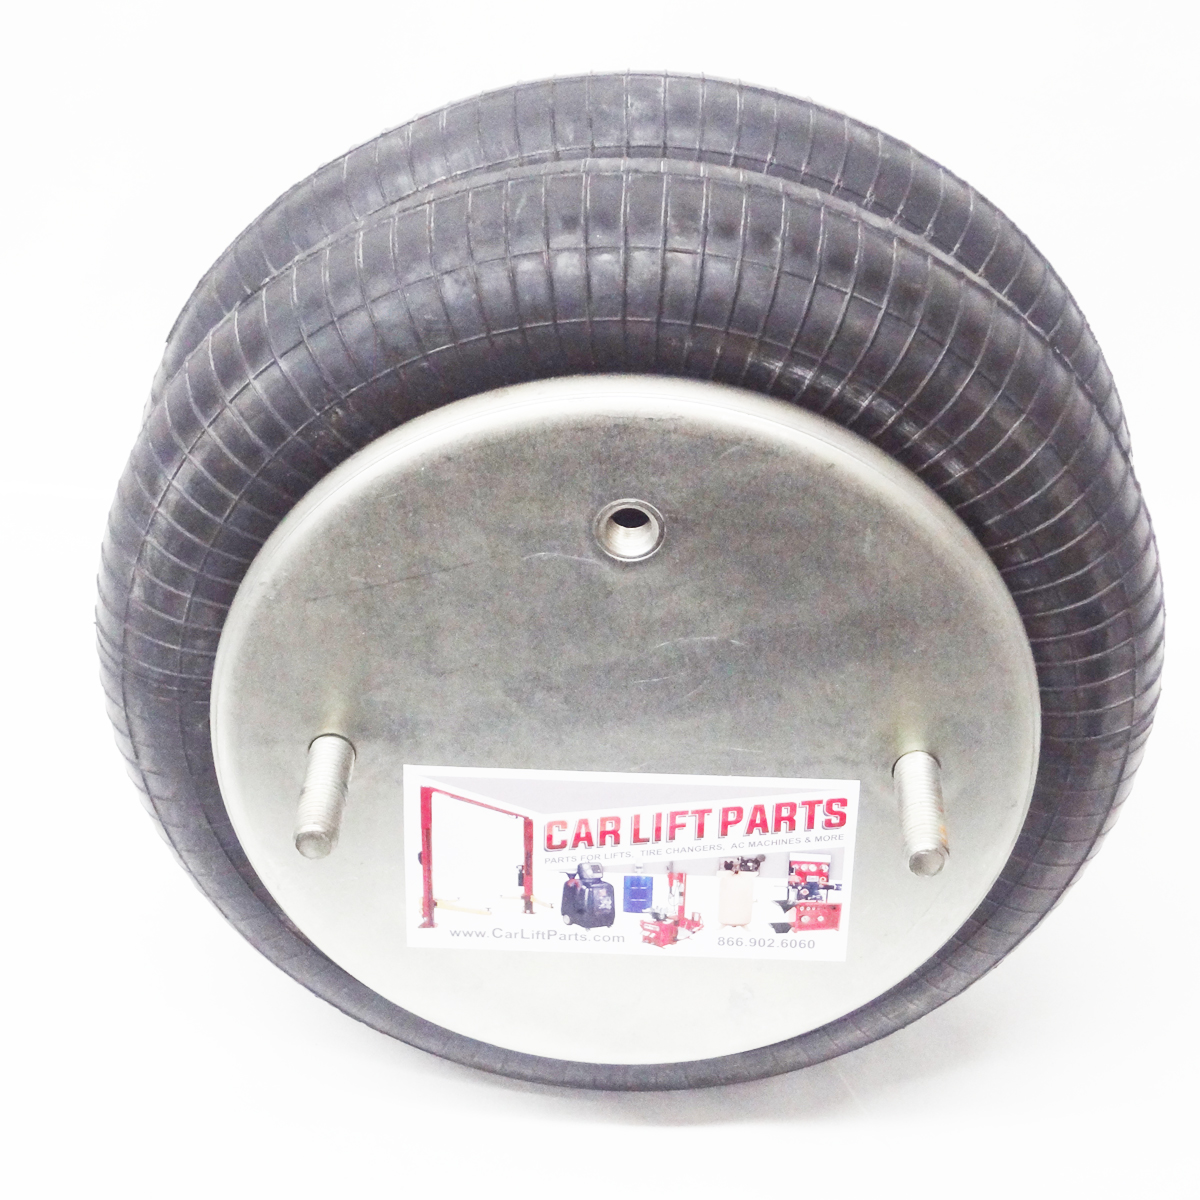 Forward Lift 991270 Air Spring Bag Rolling